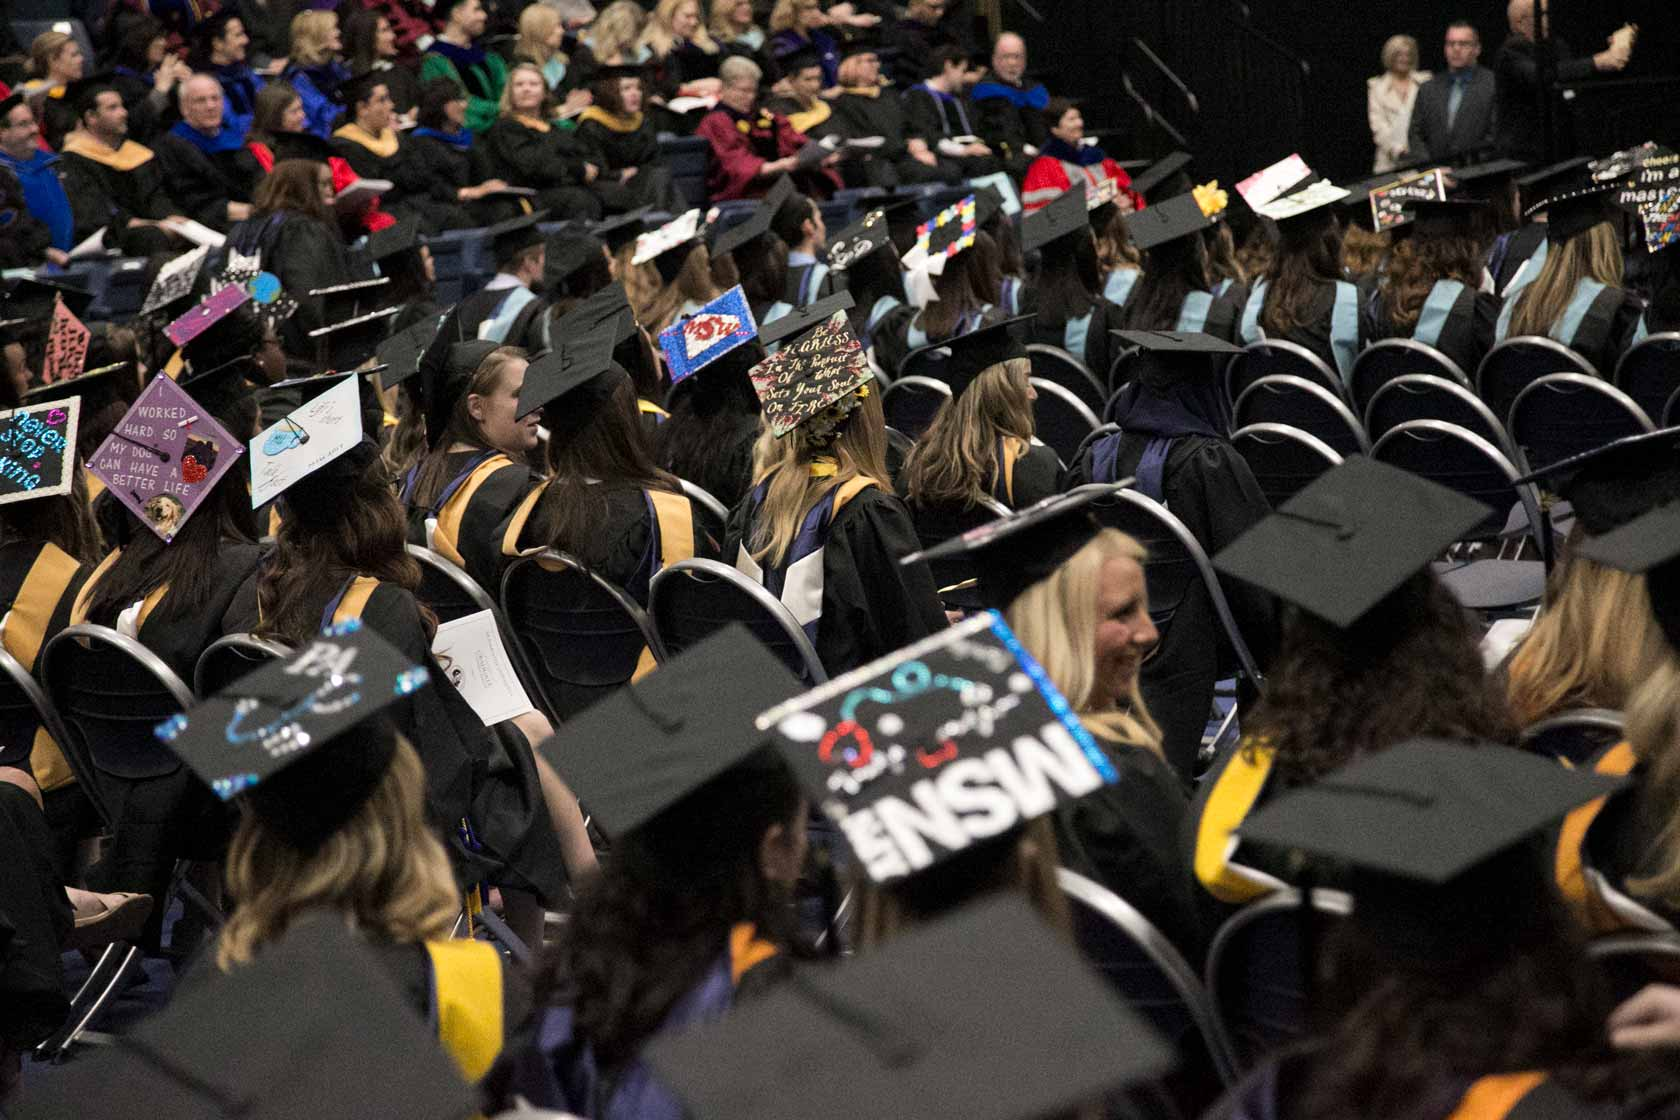 Photo of Monmouth University Graduate Students Attending Commencement Ceremony